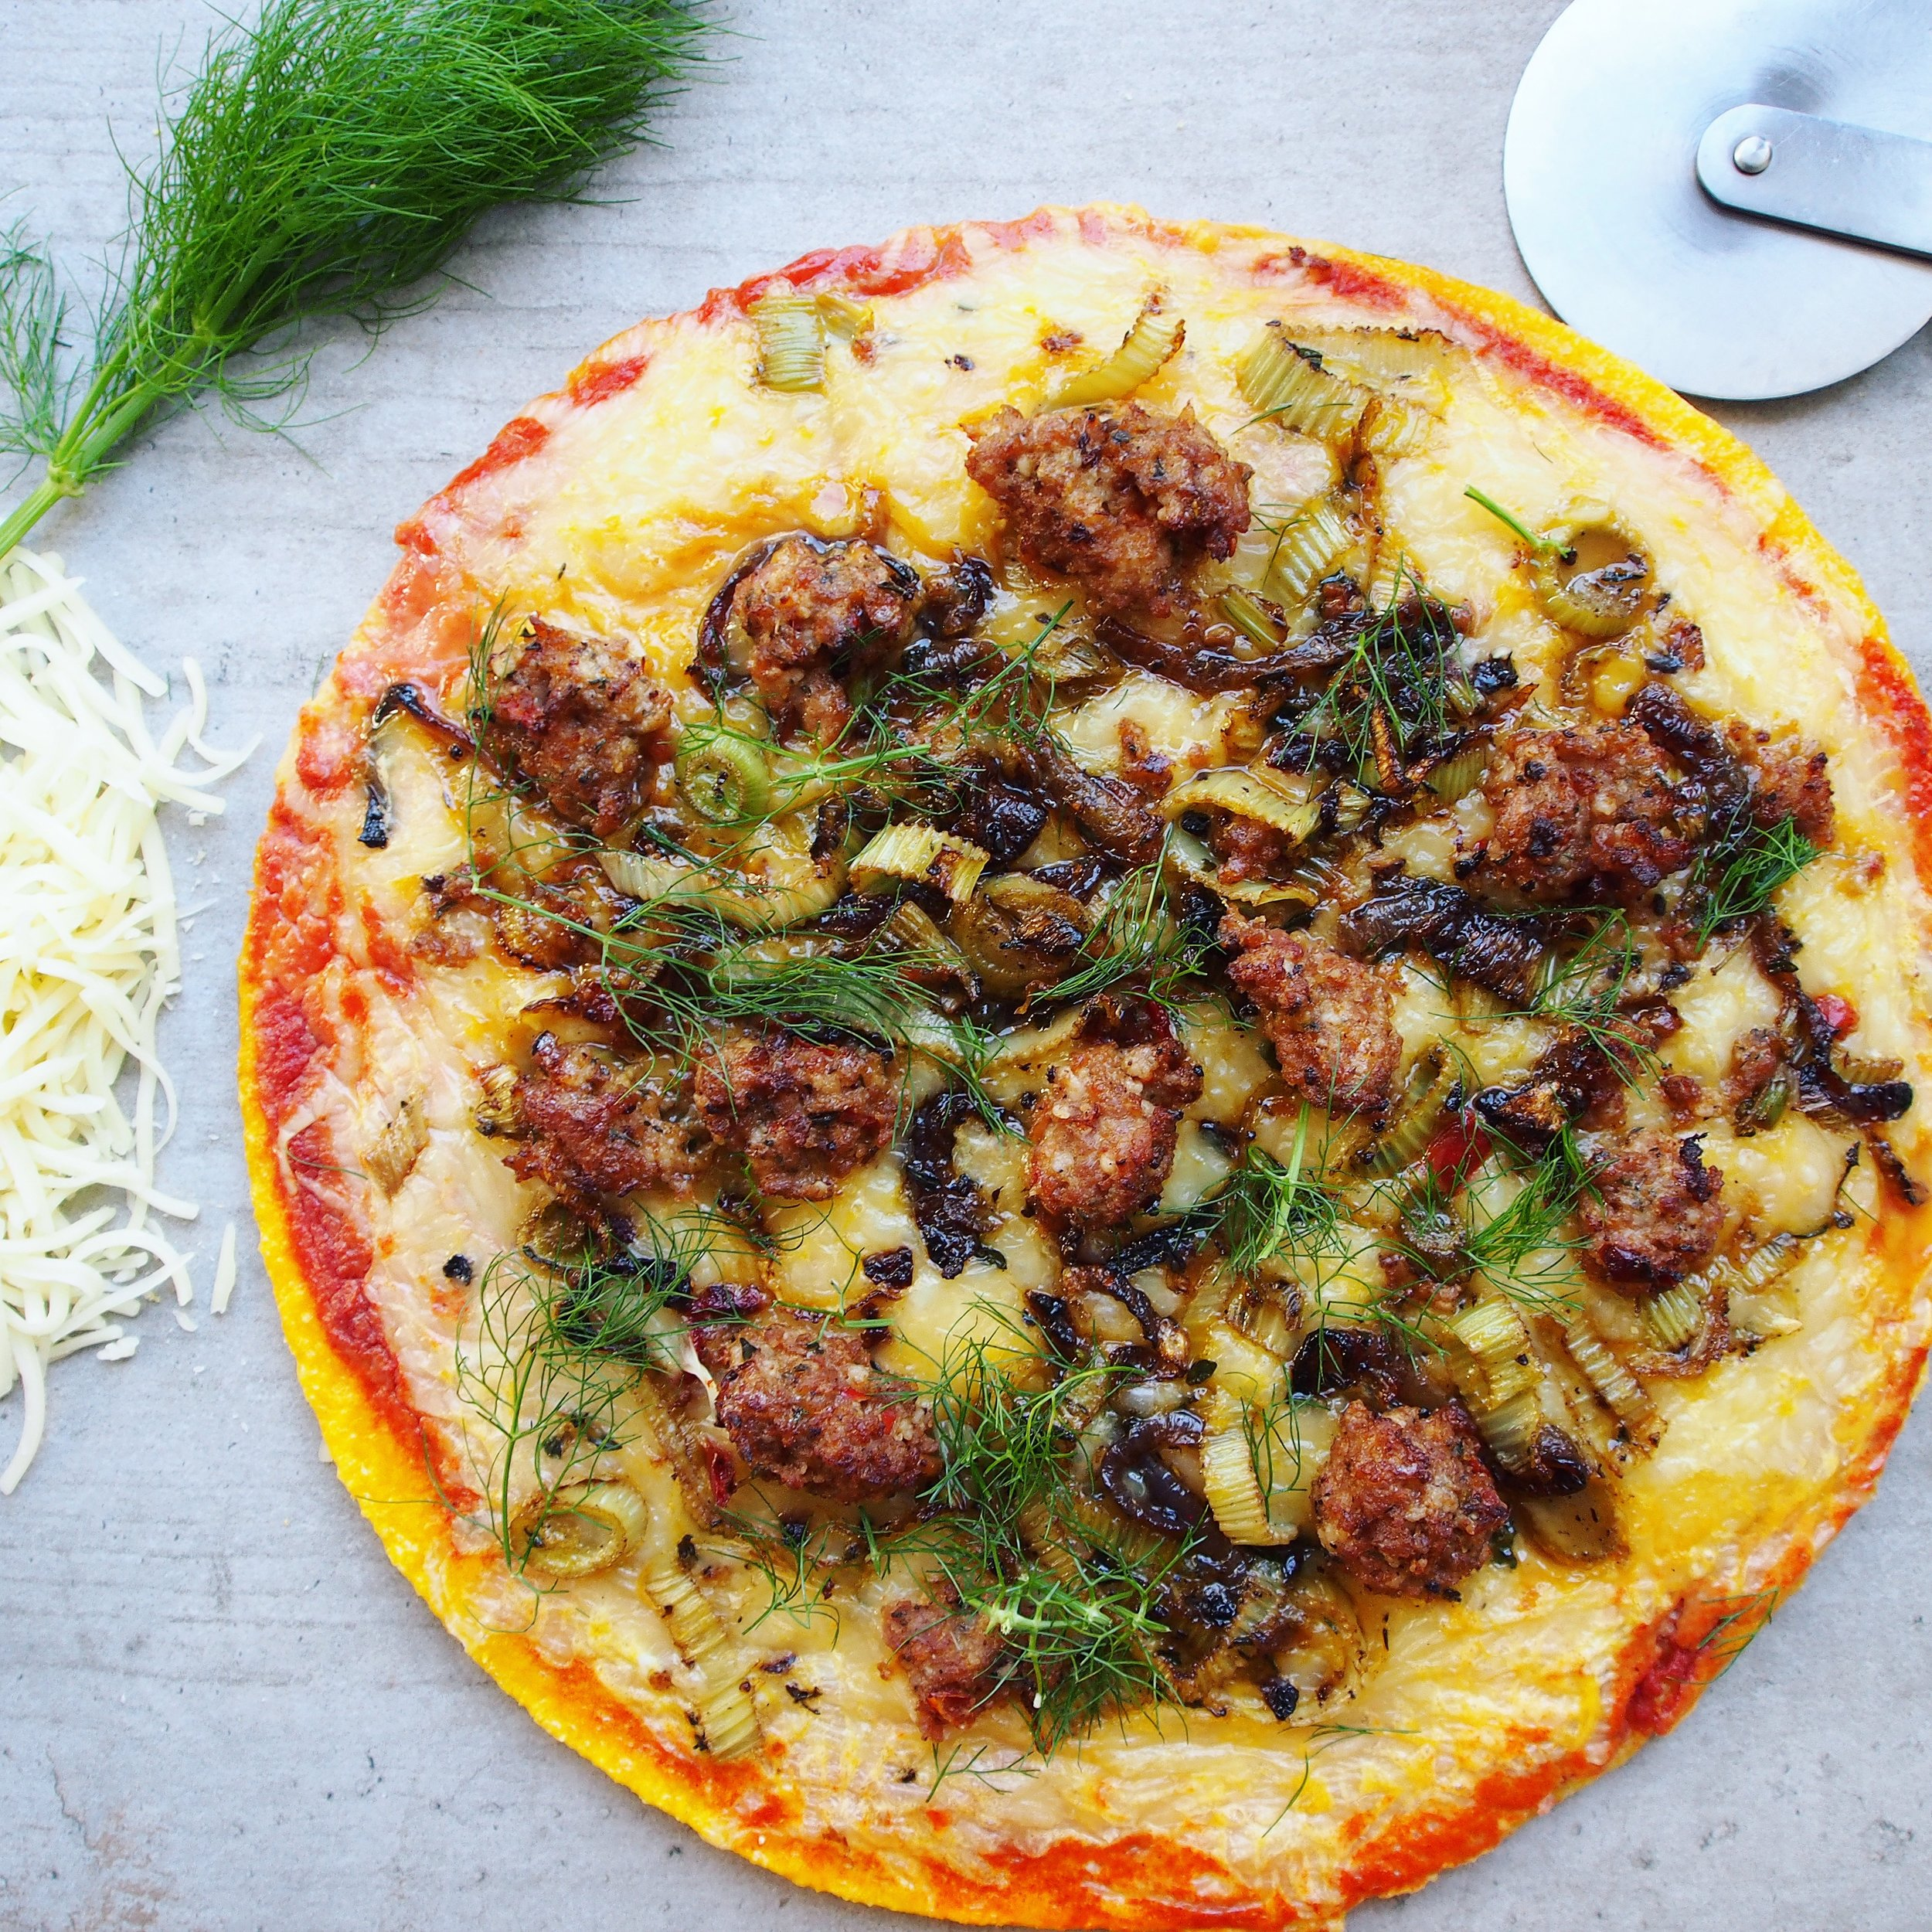 This breakfast pizza is an healthy and easy breakfast recipe! It has a butternut squash c rust from Trader Joe's which is seasonal during the holiday season!